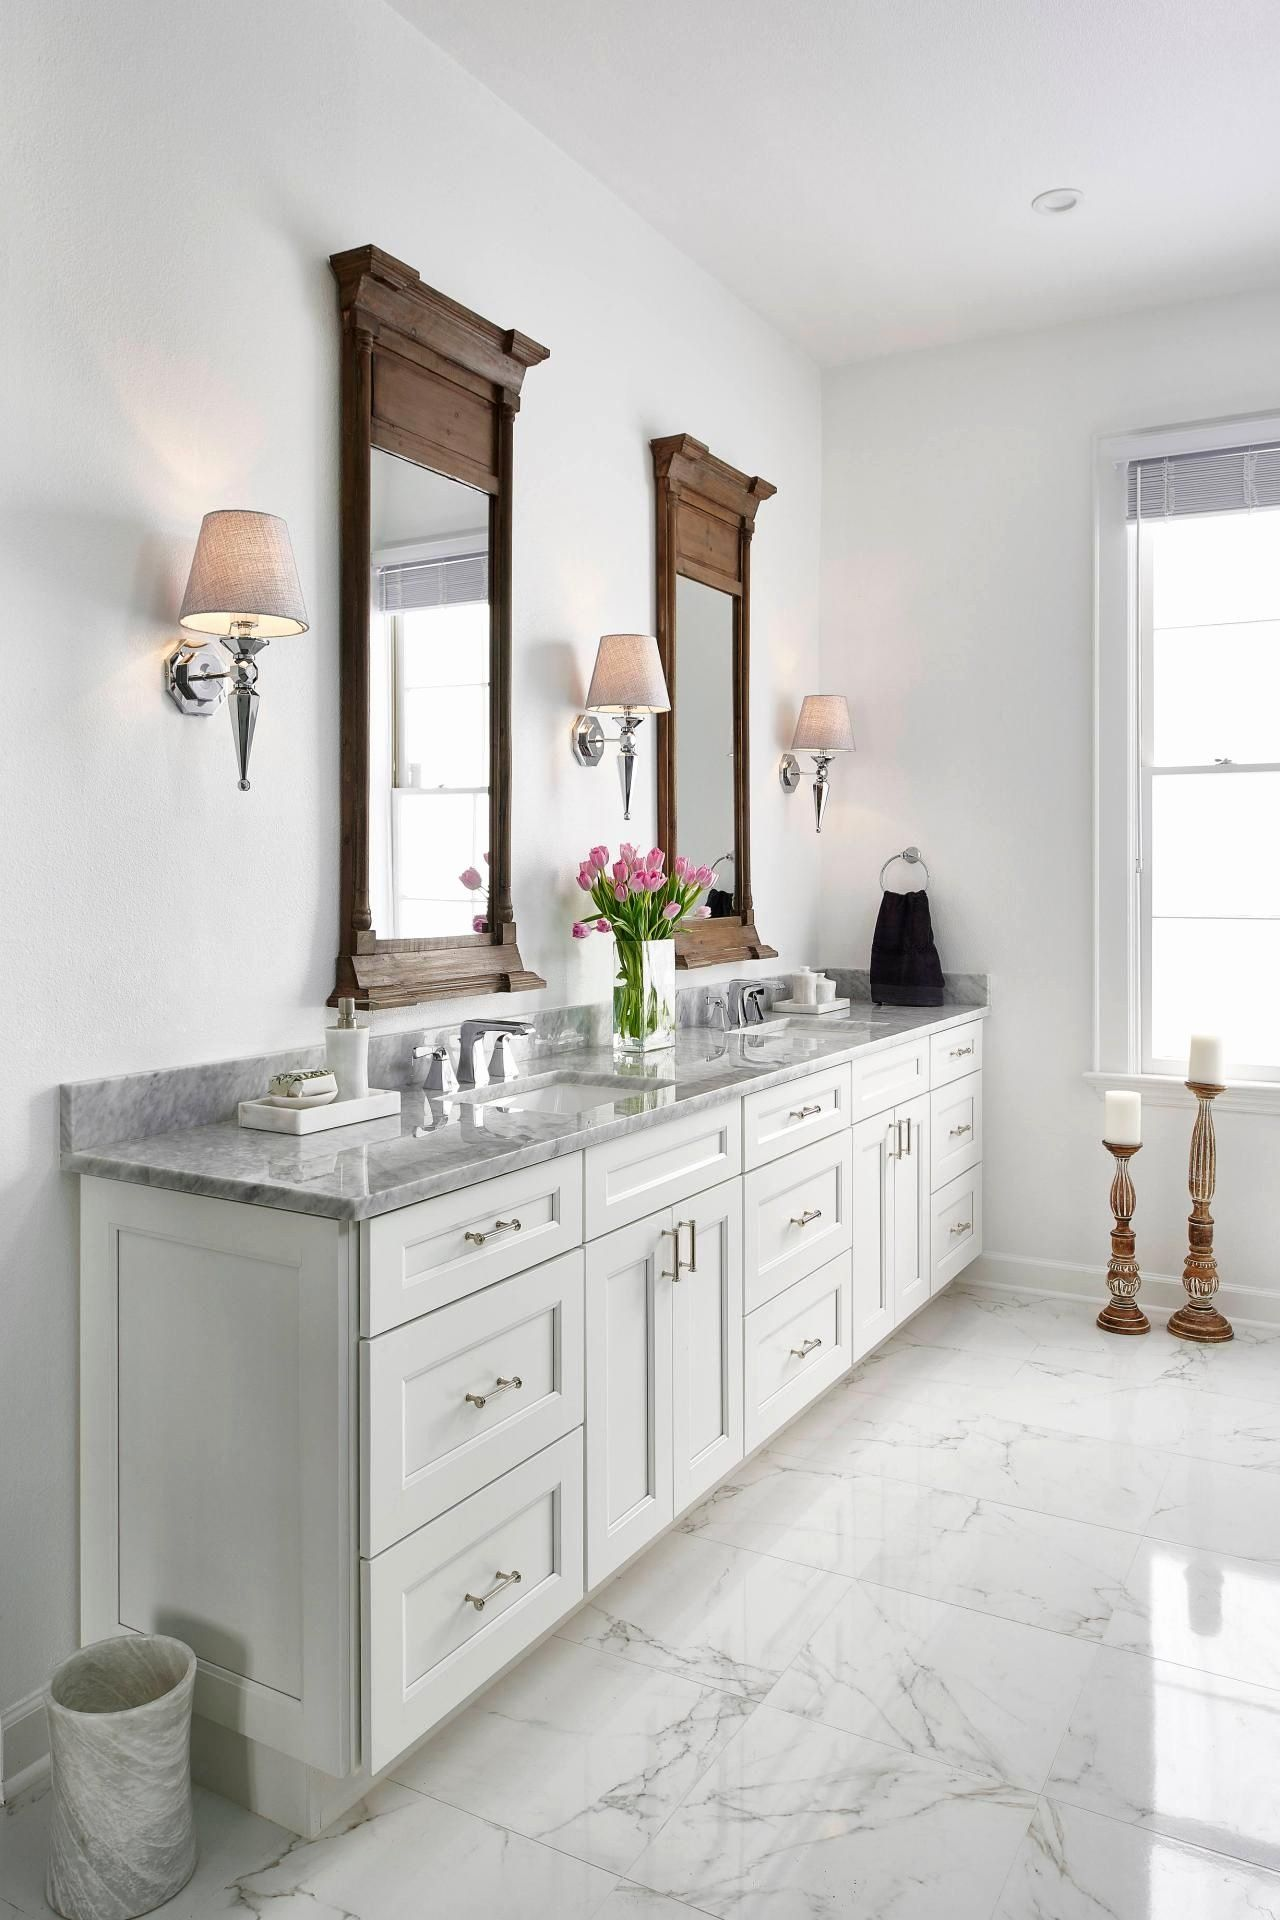 24 White Carrara Marble Bathroom Ideas In 2020 White Master